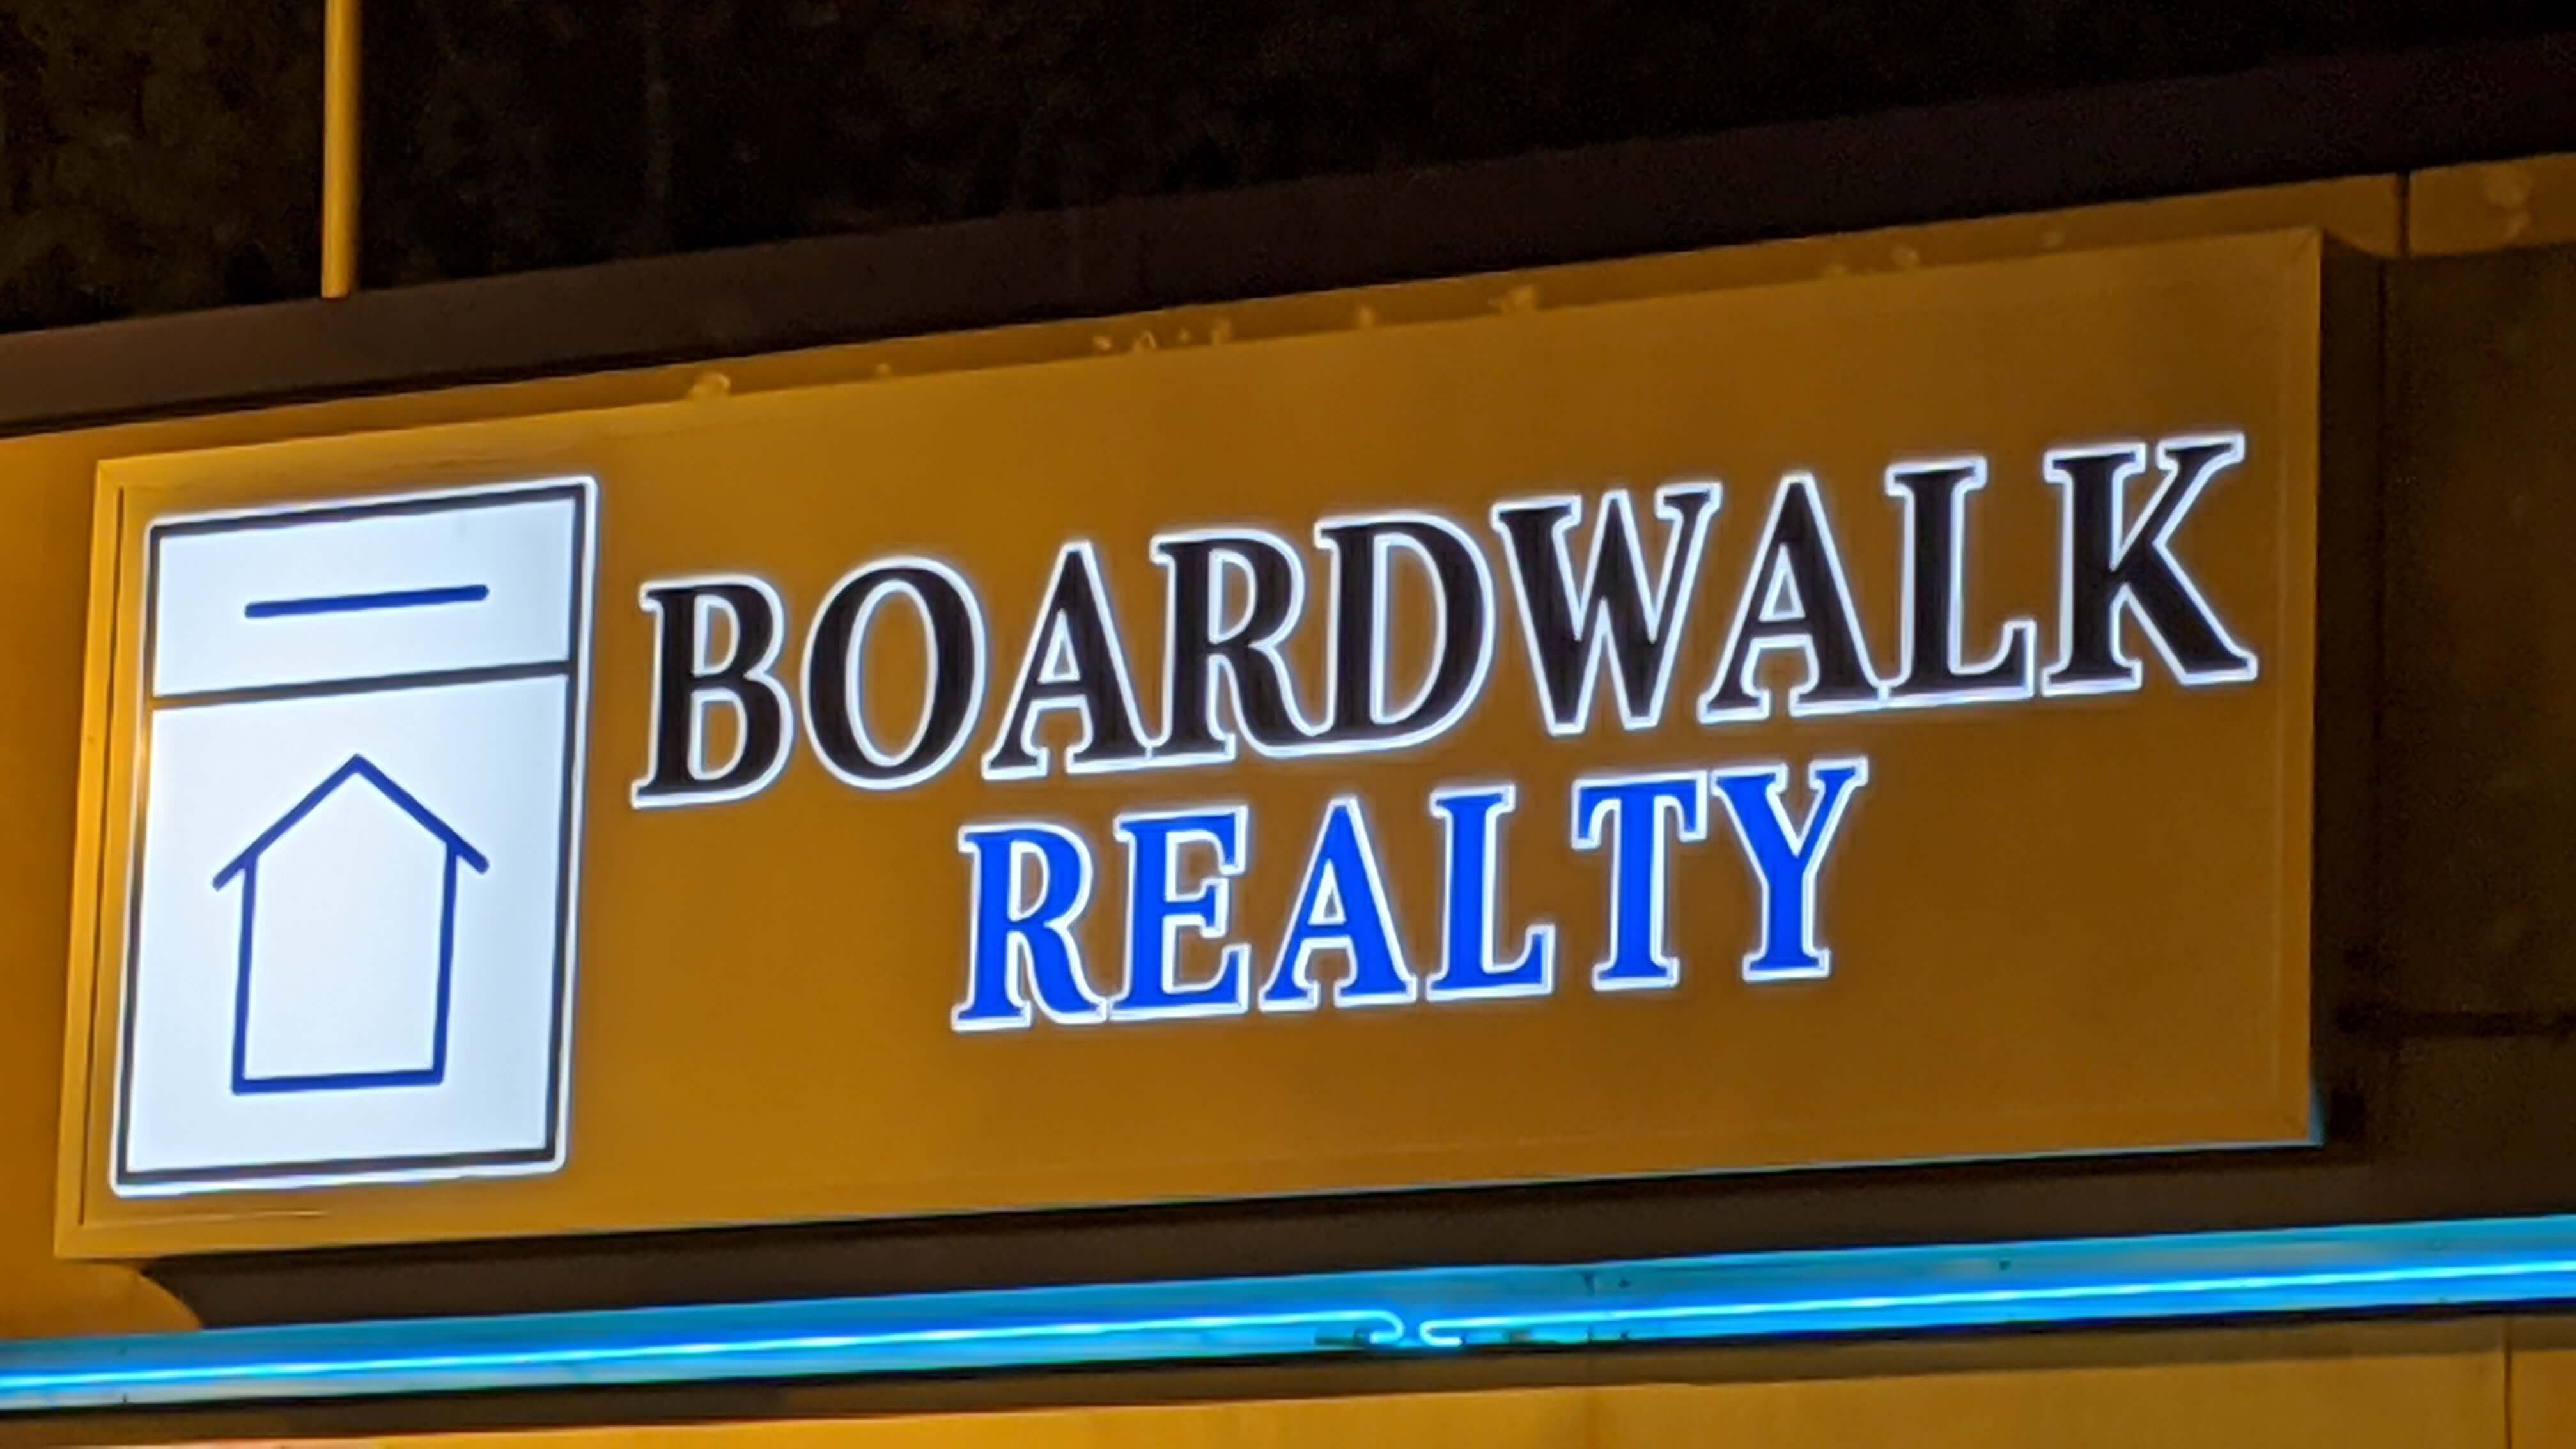 Boarwalk Reality lit sign at night with halo lighting, logo, and different colors